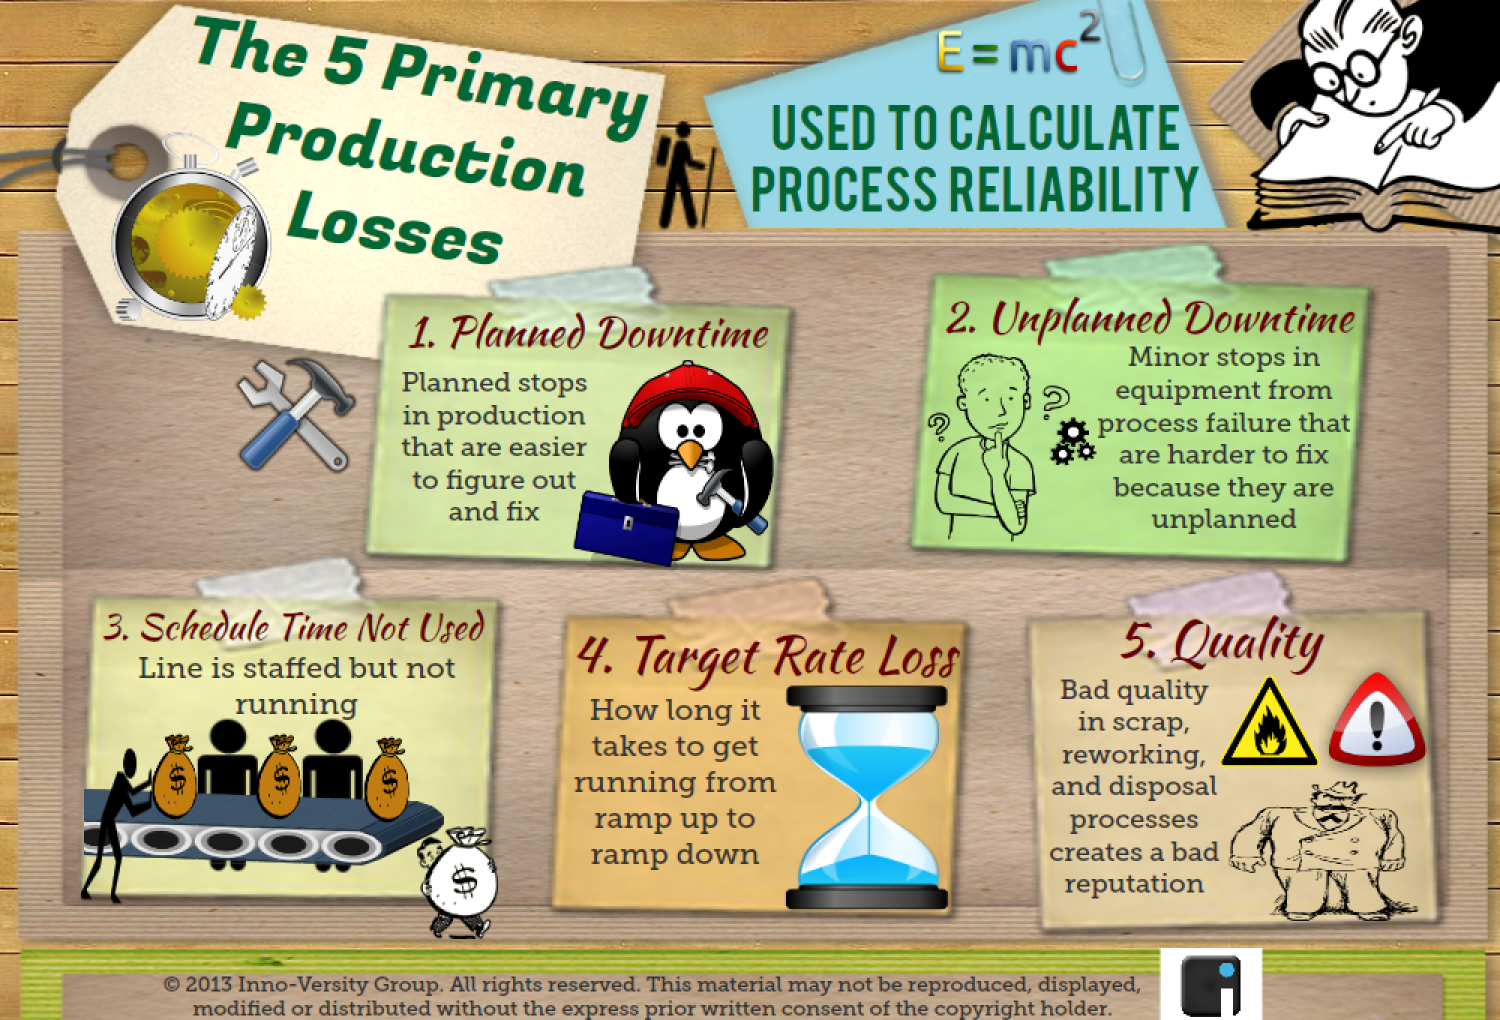 The 5 Primary Production Losses Infographic